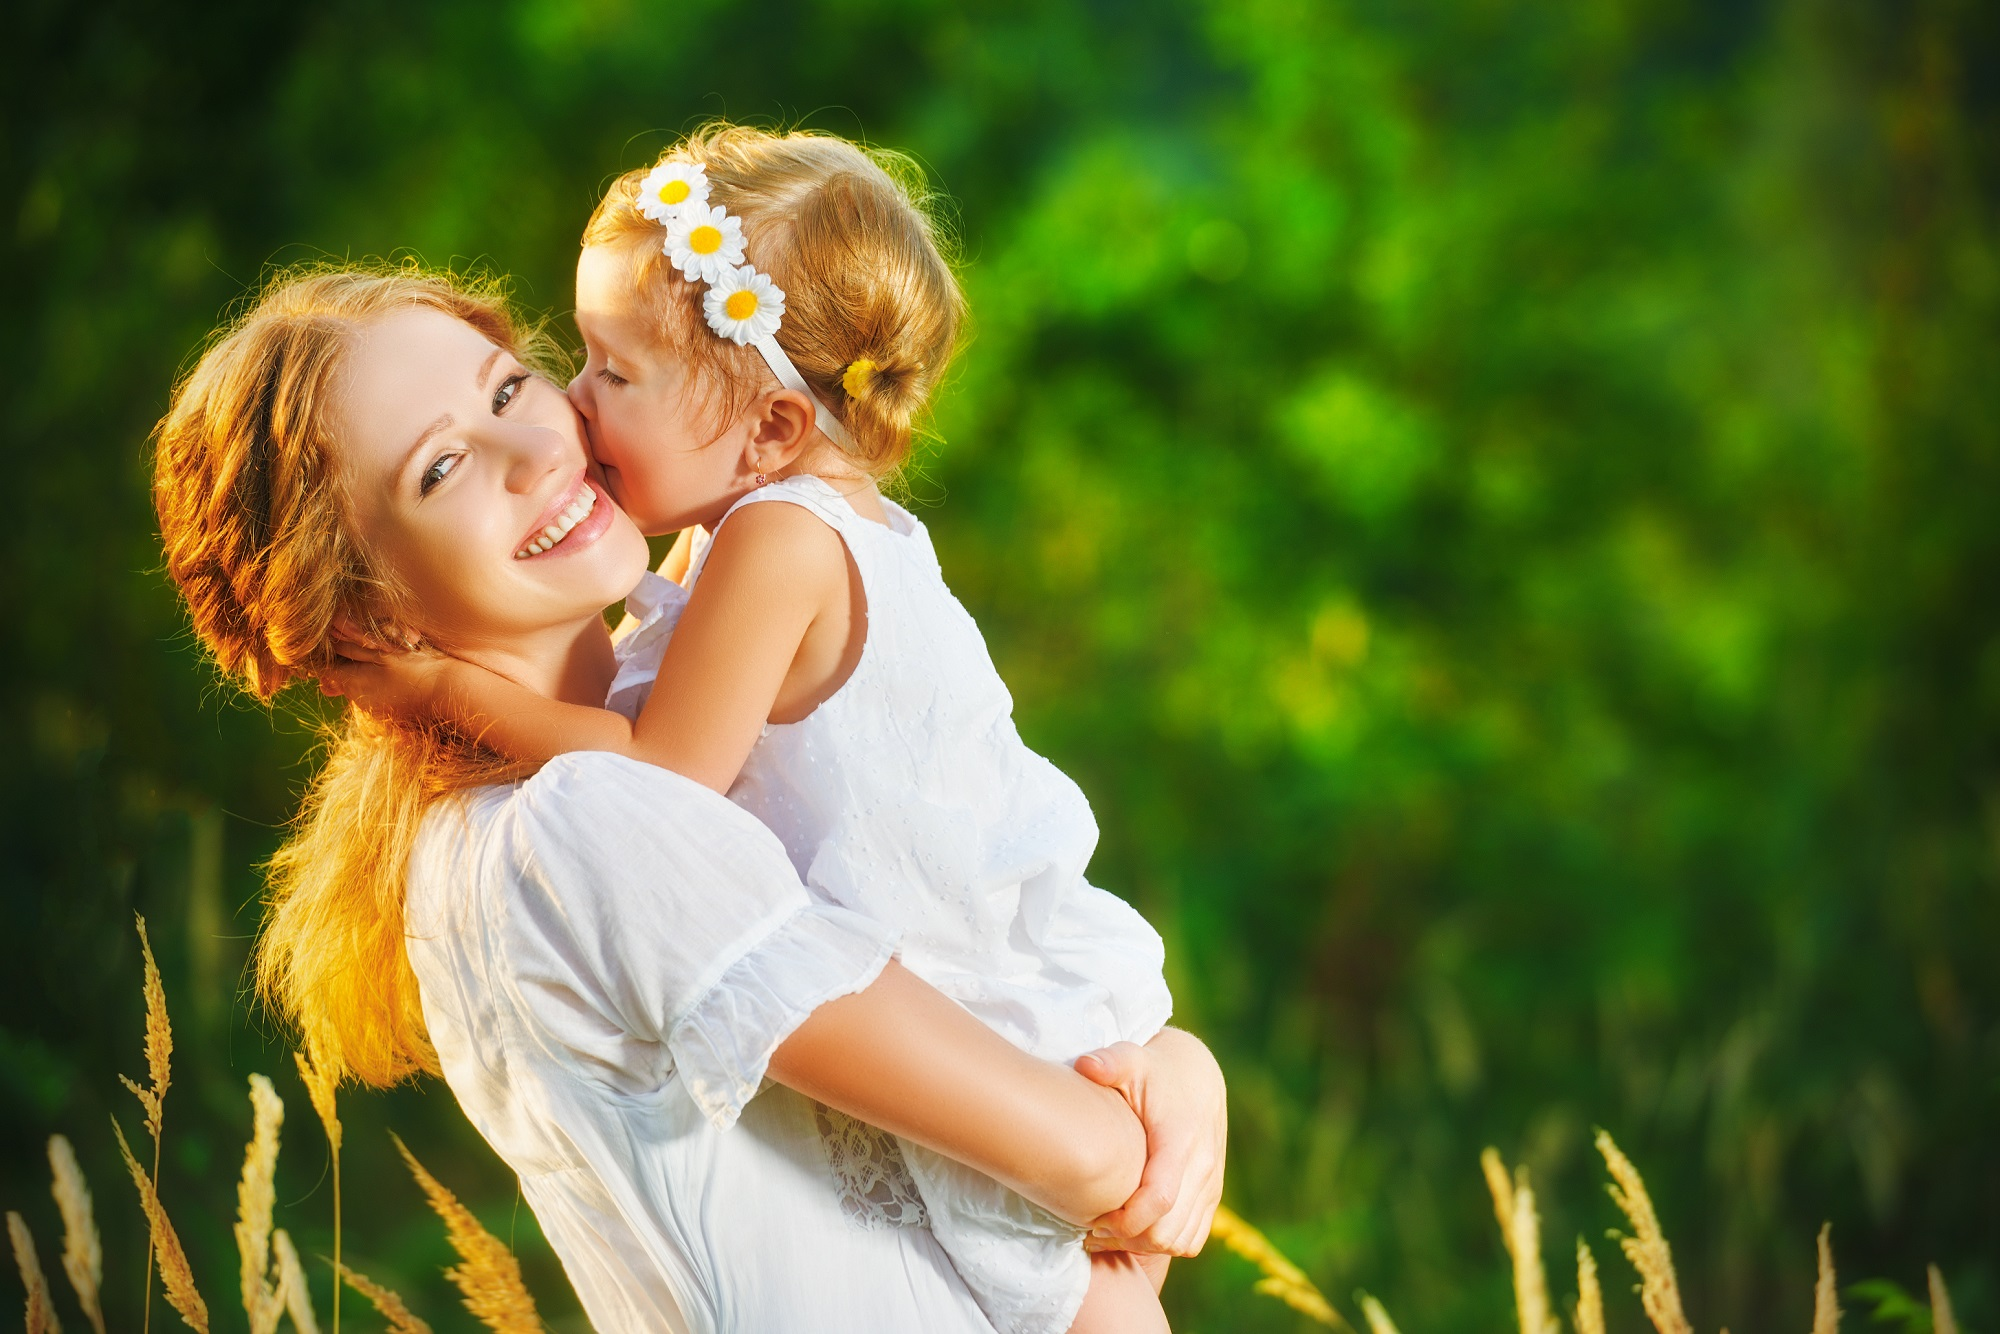 healthy mother and daughter, Peak ENT and Voice Center, Denver Voice Clinic, Denver ENT, Colorado ENT, Denver hearing specialists, colorado ent doctor, ent rhinoplasty specialist, Peak ENT, vocal cord dysfunction